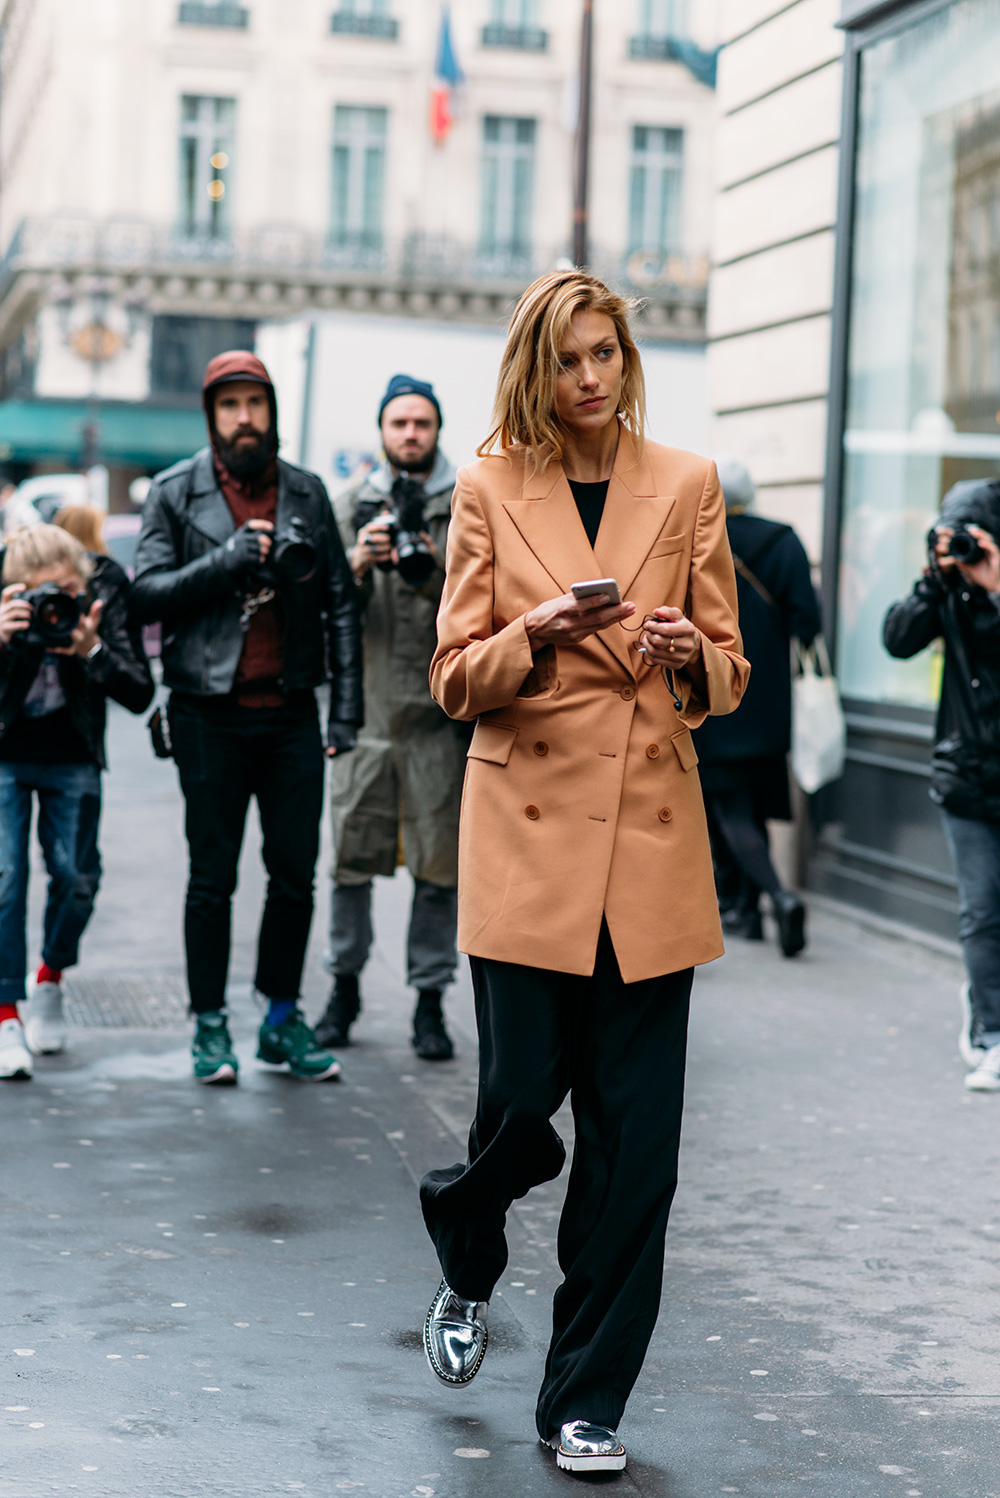 Paris Fashion Week Streetstyle by The Petticoat -Anja Rubik after Stella McCartney Show Paris PFW